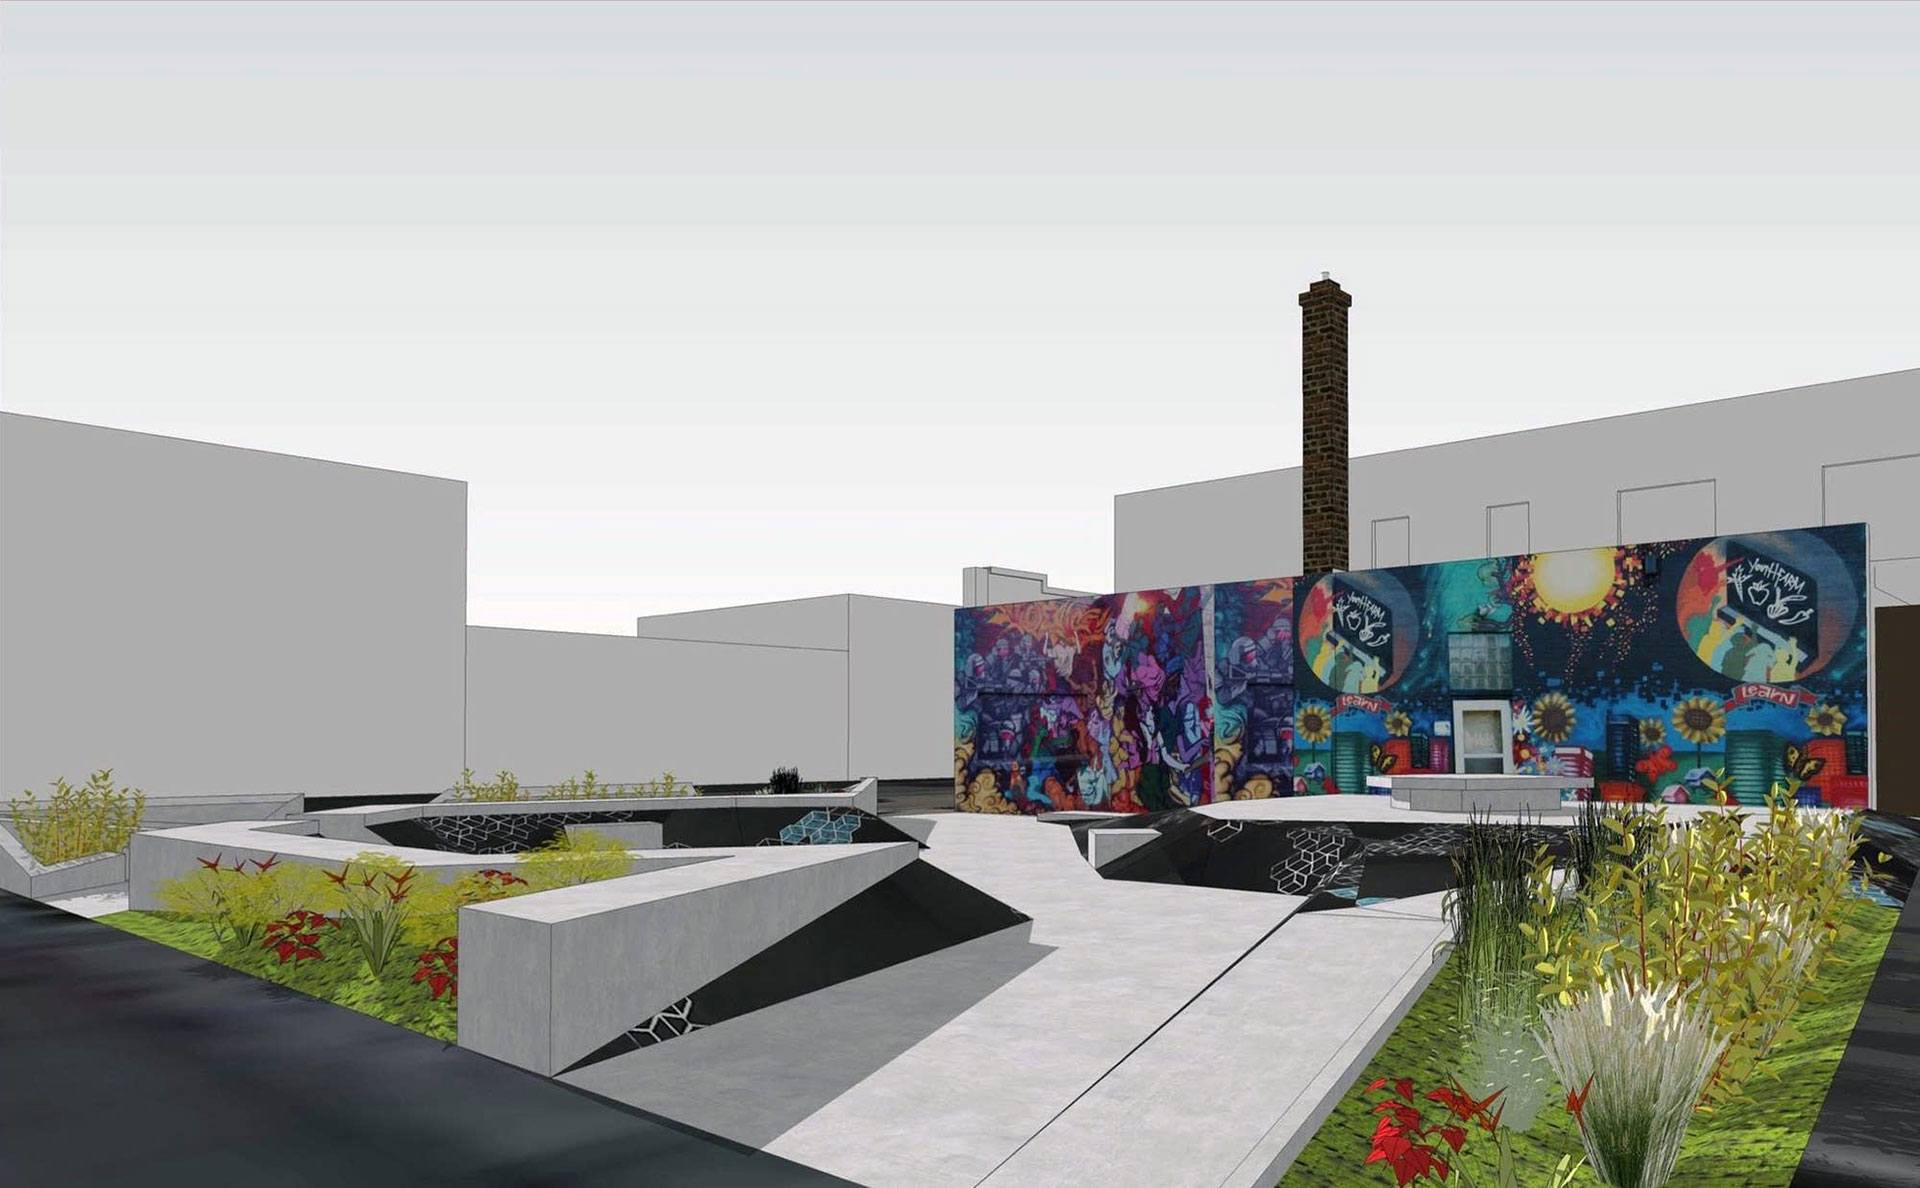 A digital rendering of a skate plaza